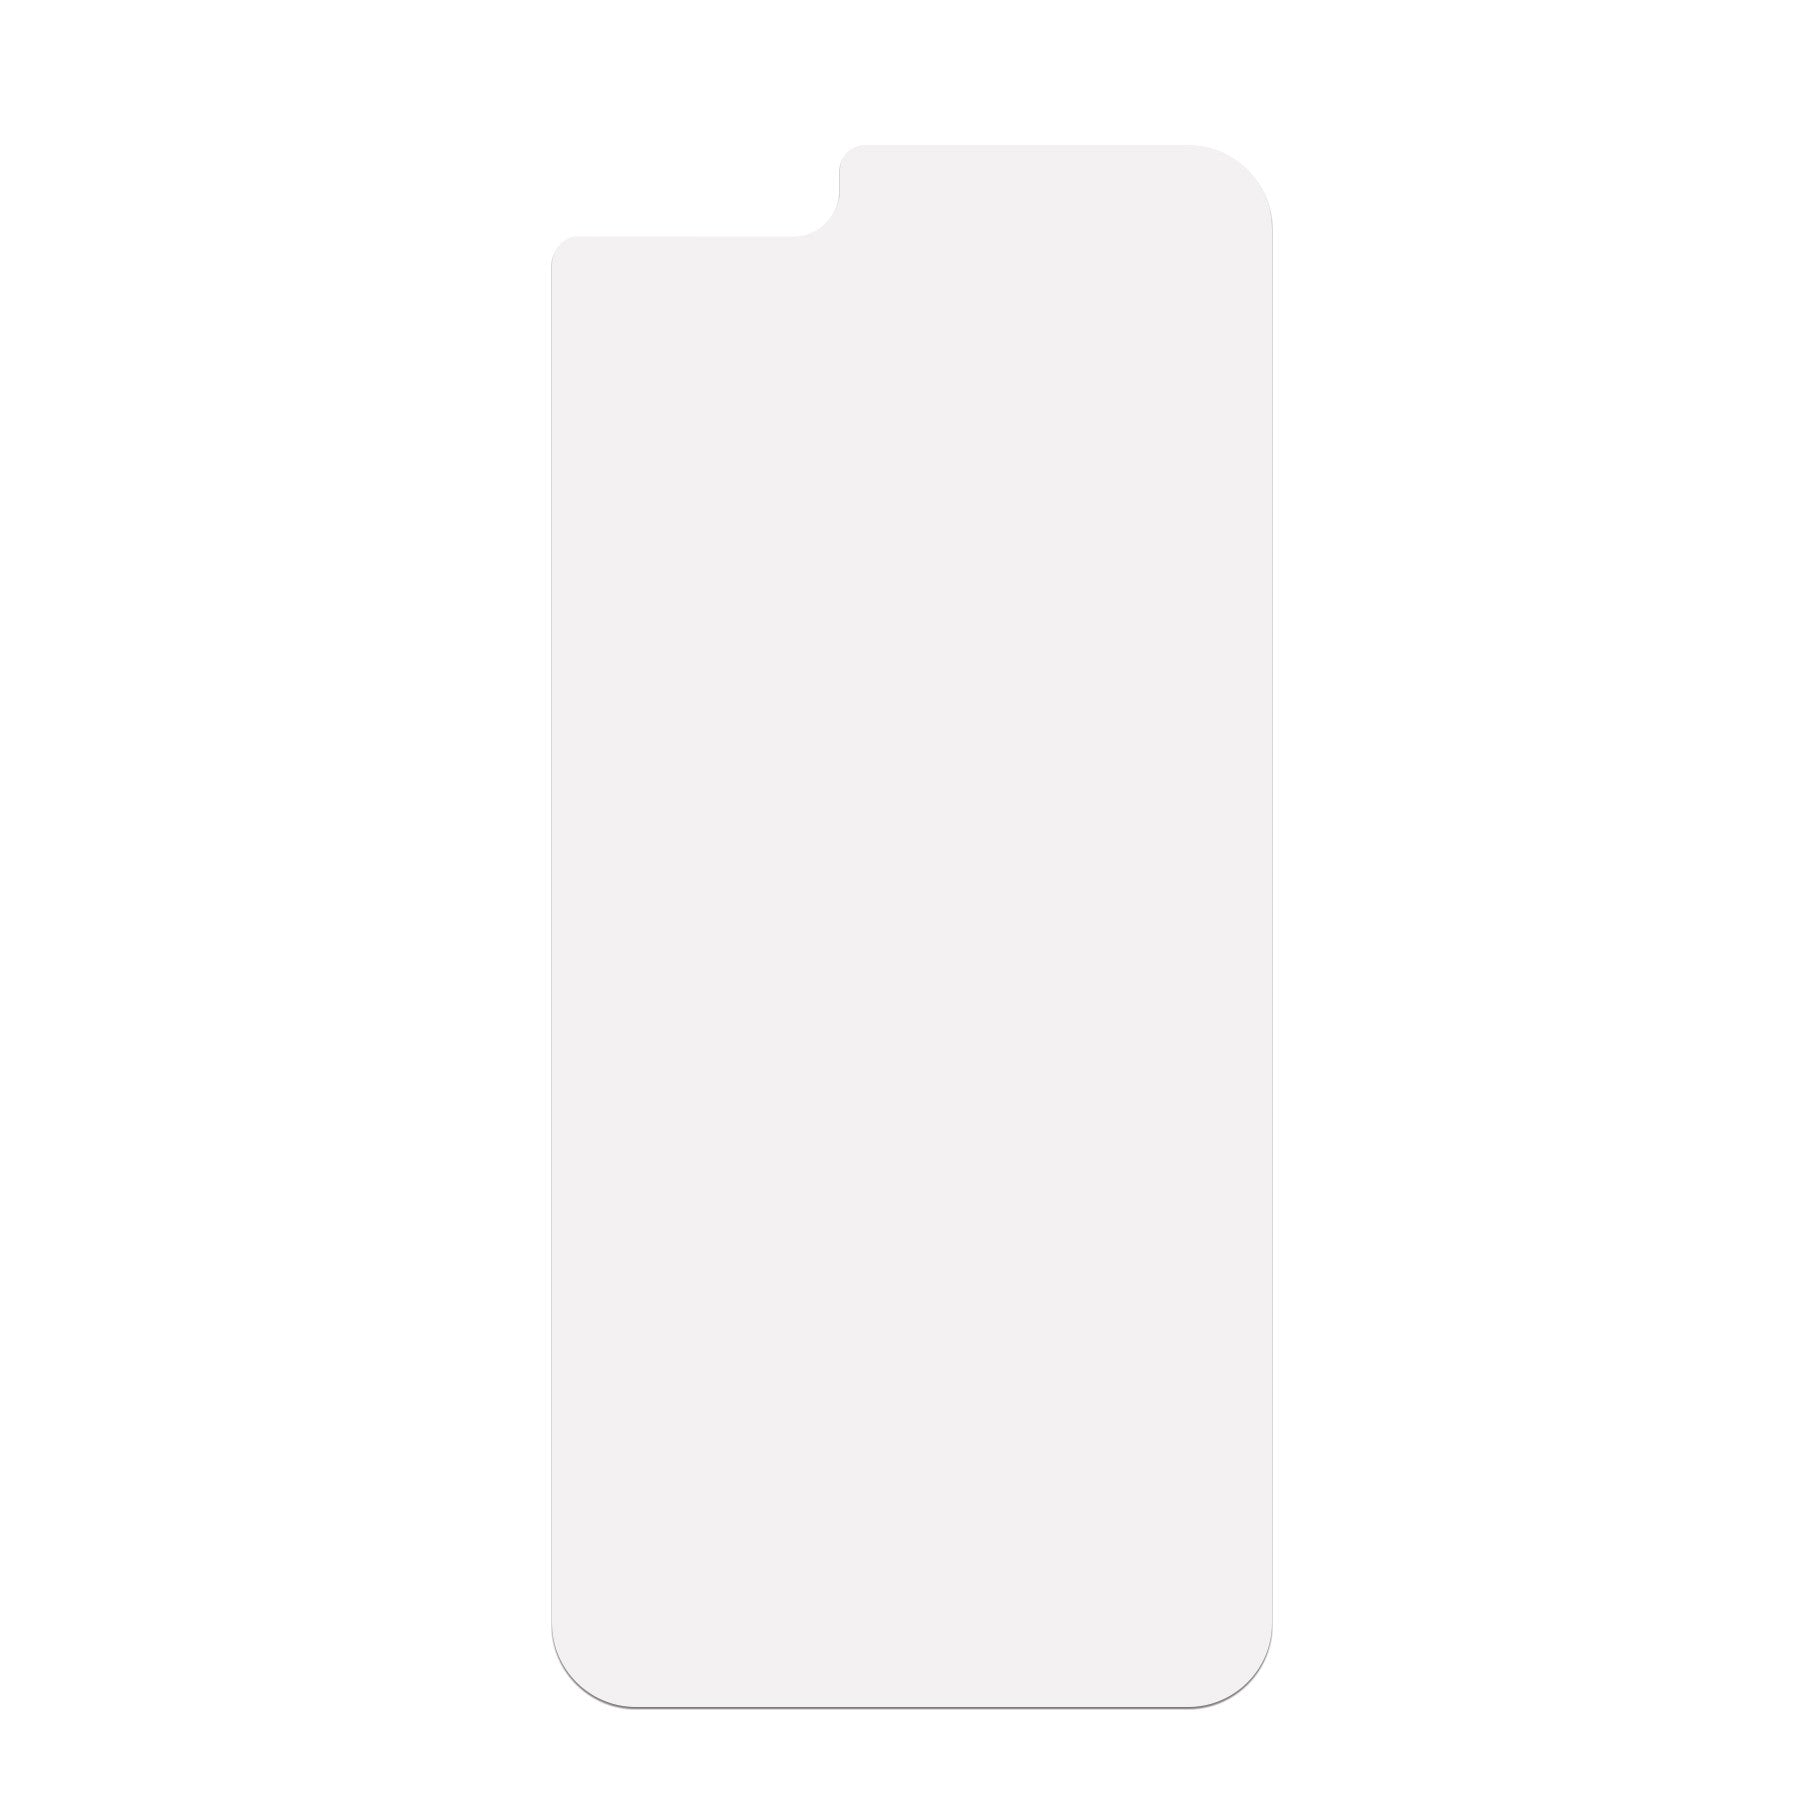 Replacement Adhesive - iPhone 6/6s - 6/6s Plus